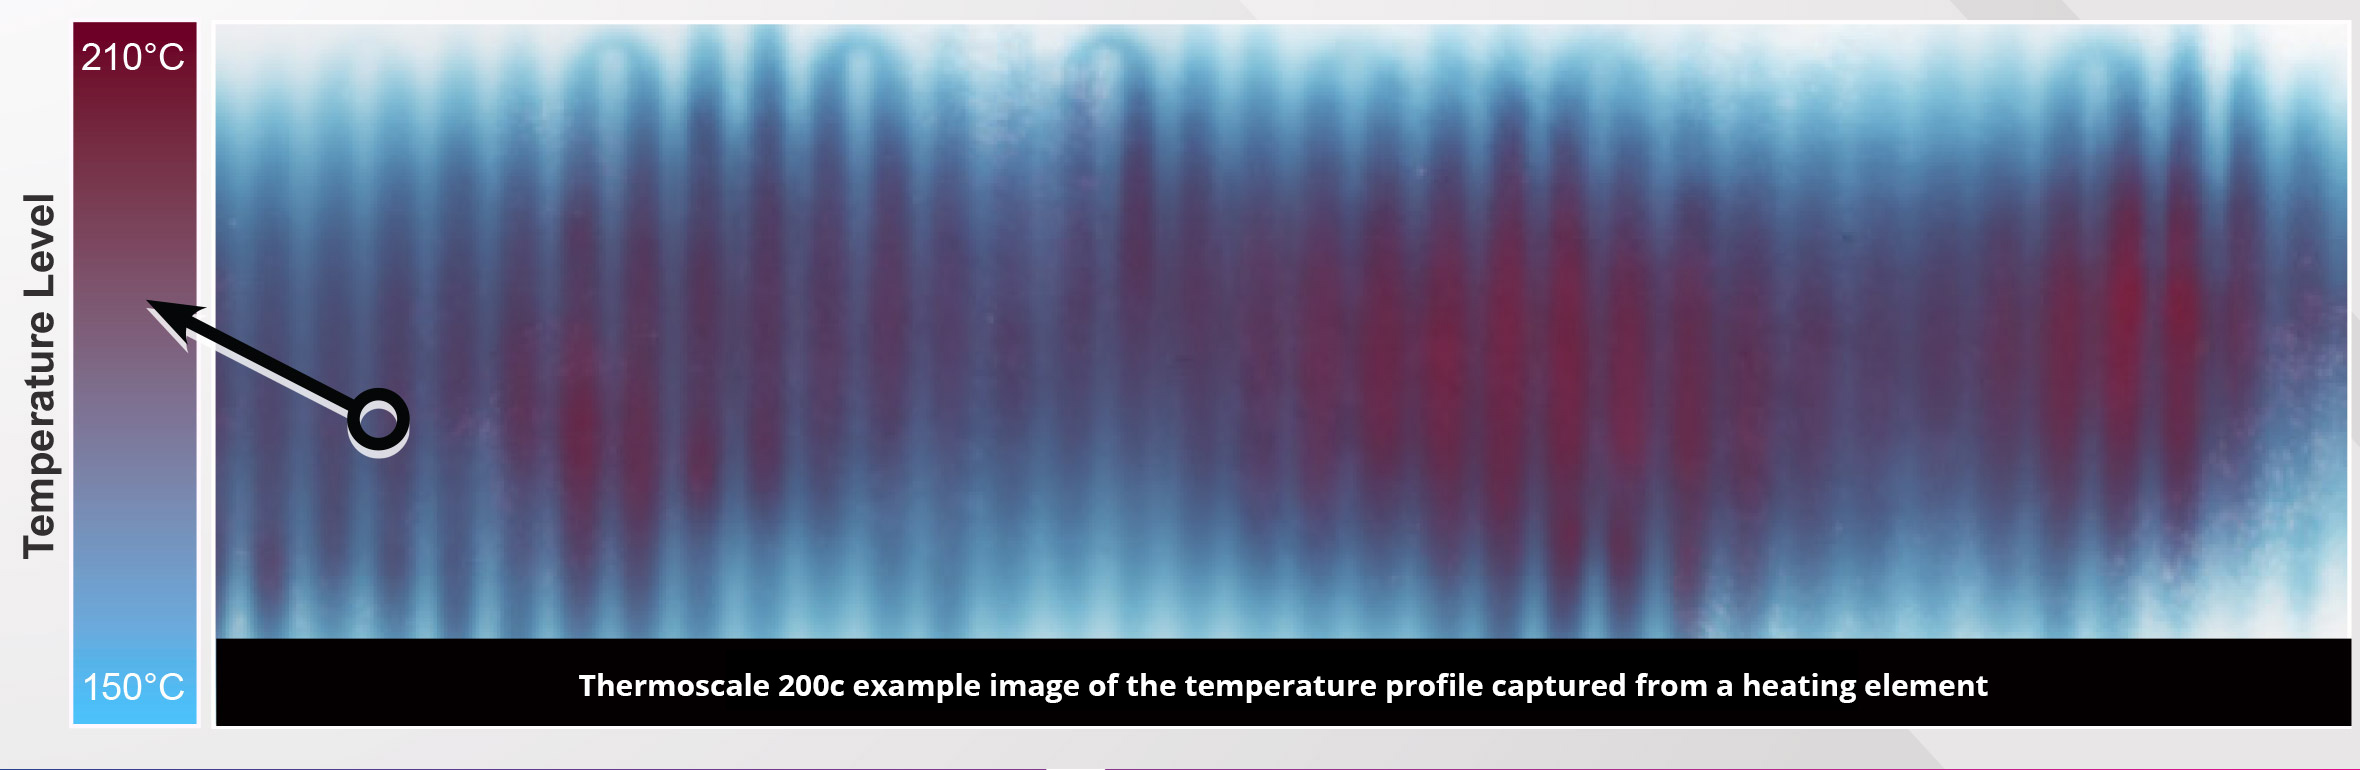 Fujifilm Thermoscale | Thermoscale | Tactile Surface